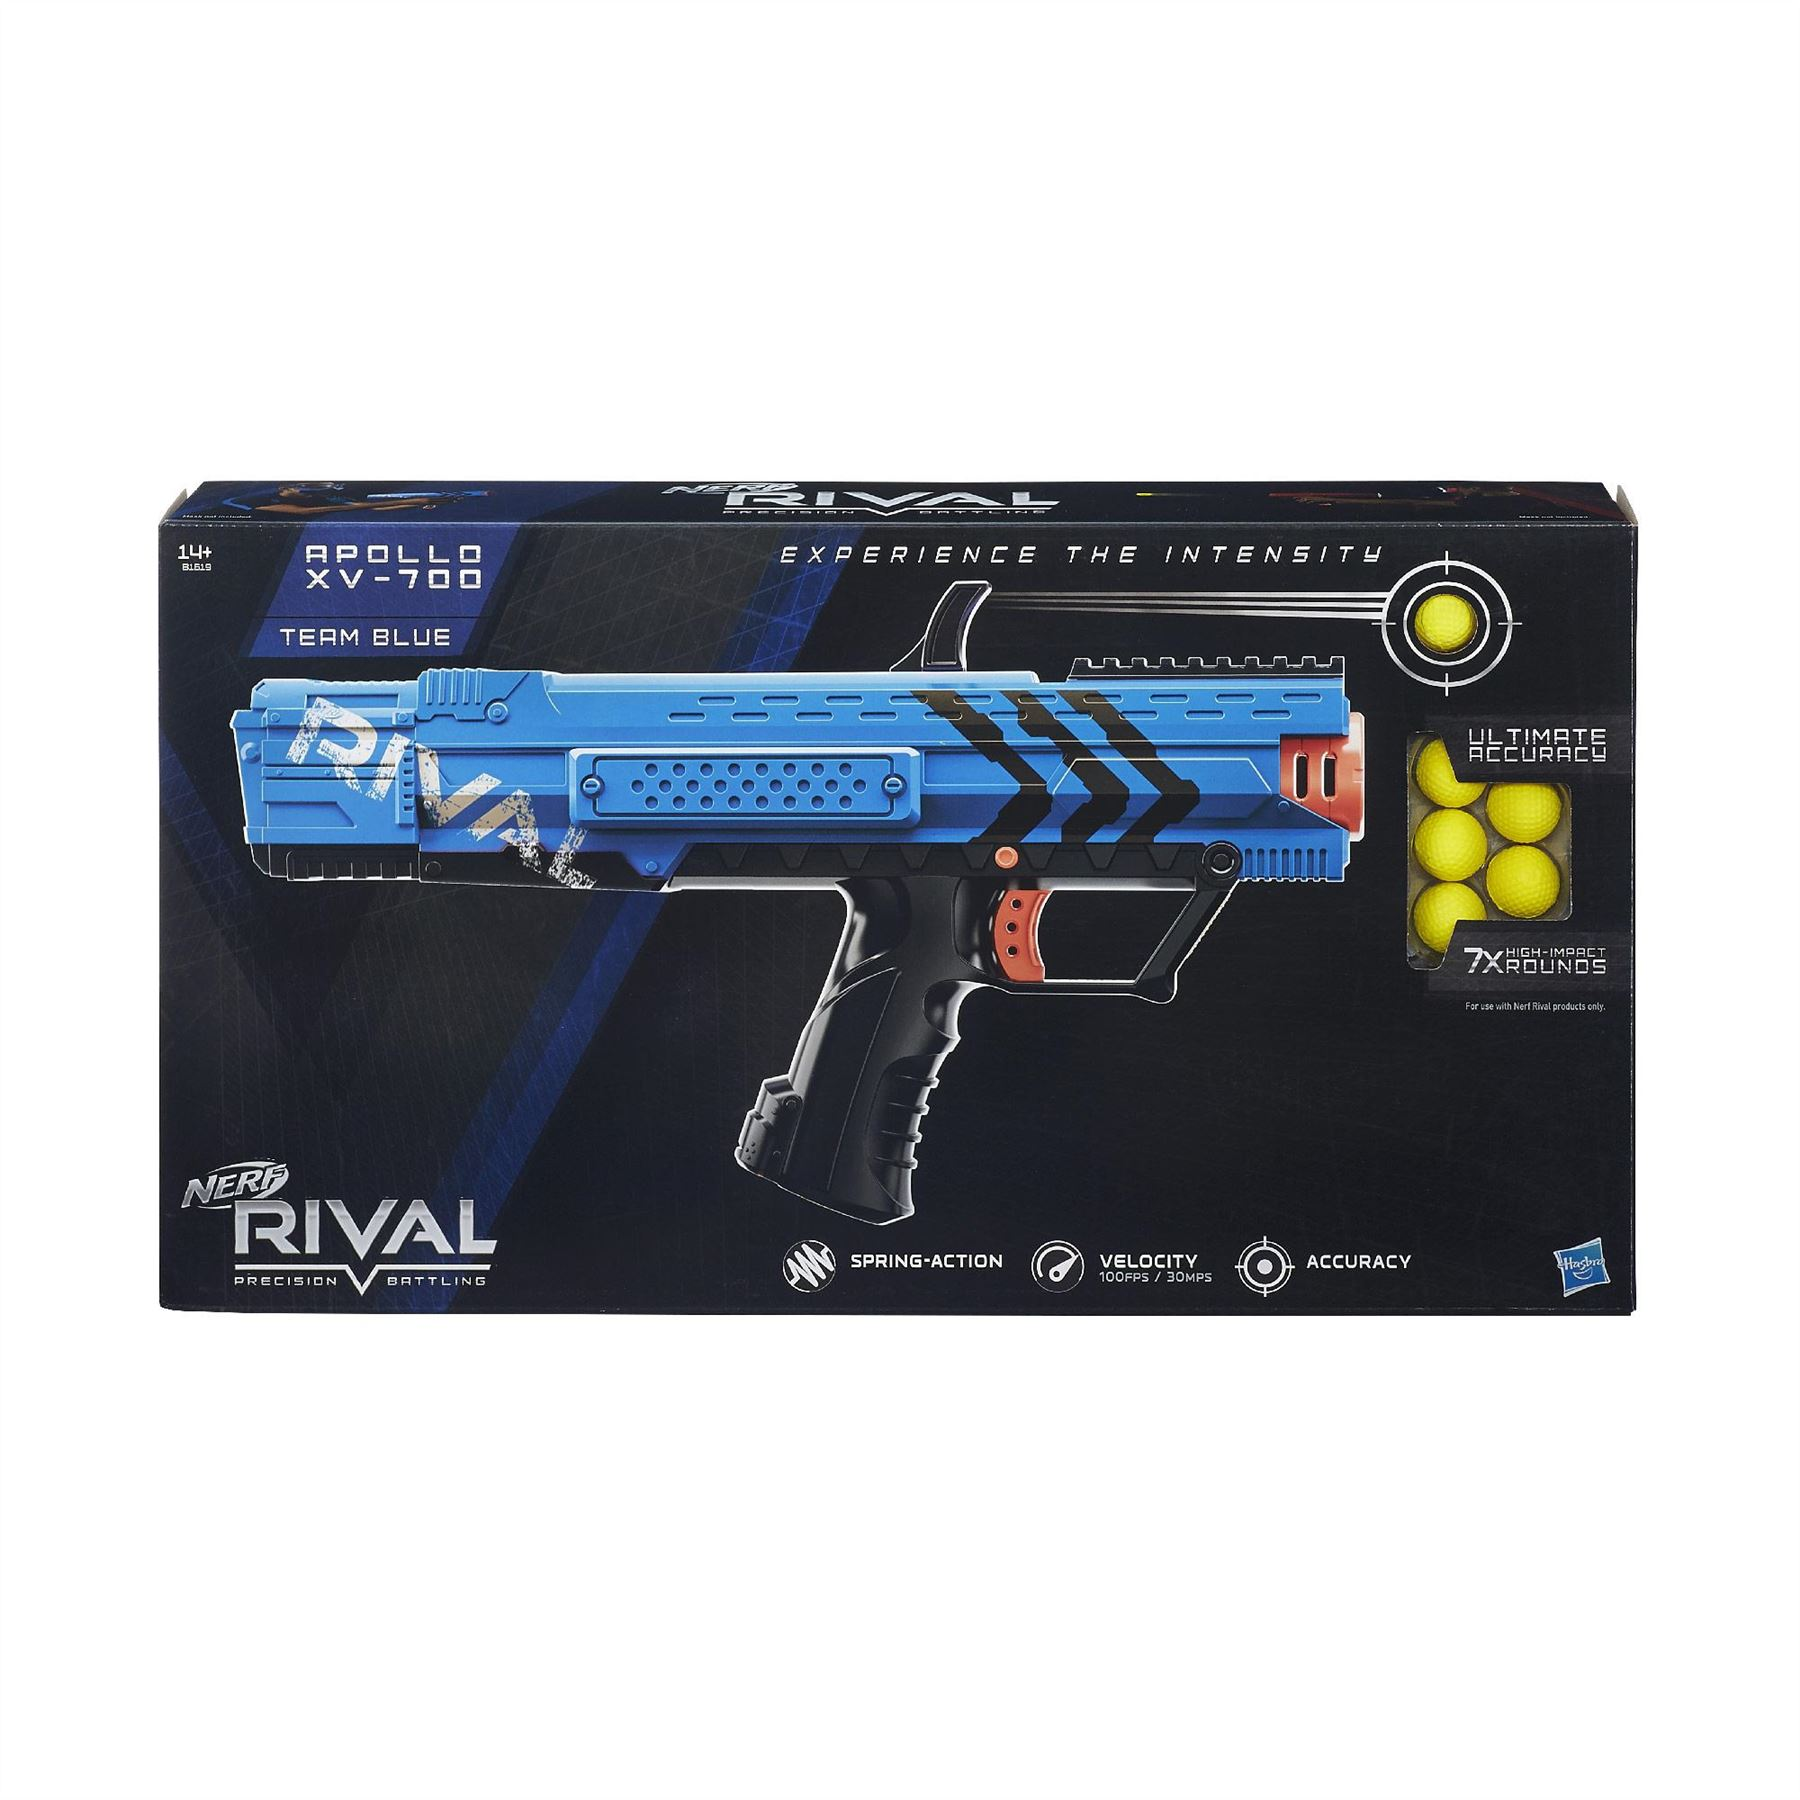 Nerf-Rival-Apollo-XV-700-RED-BLUE-Blaster-